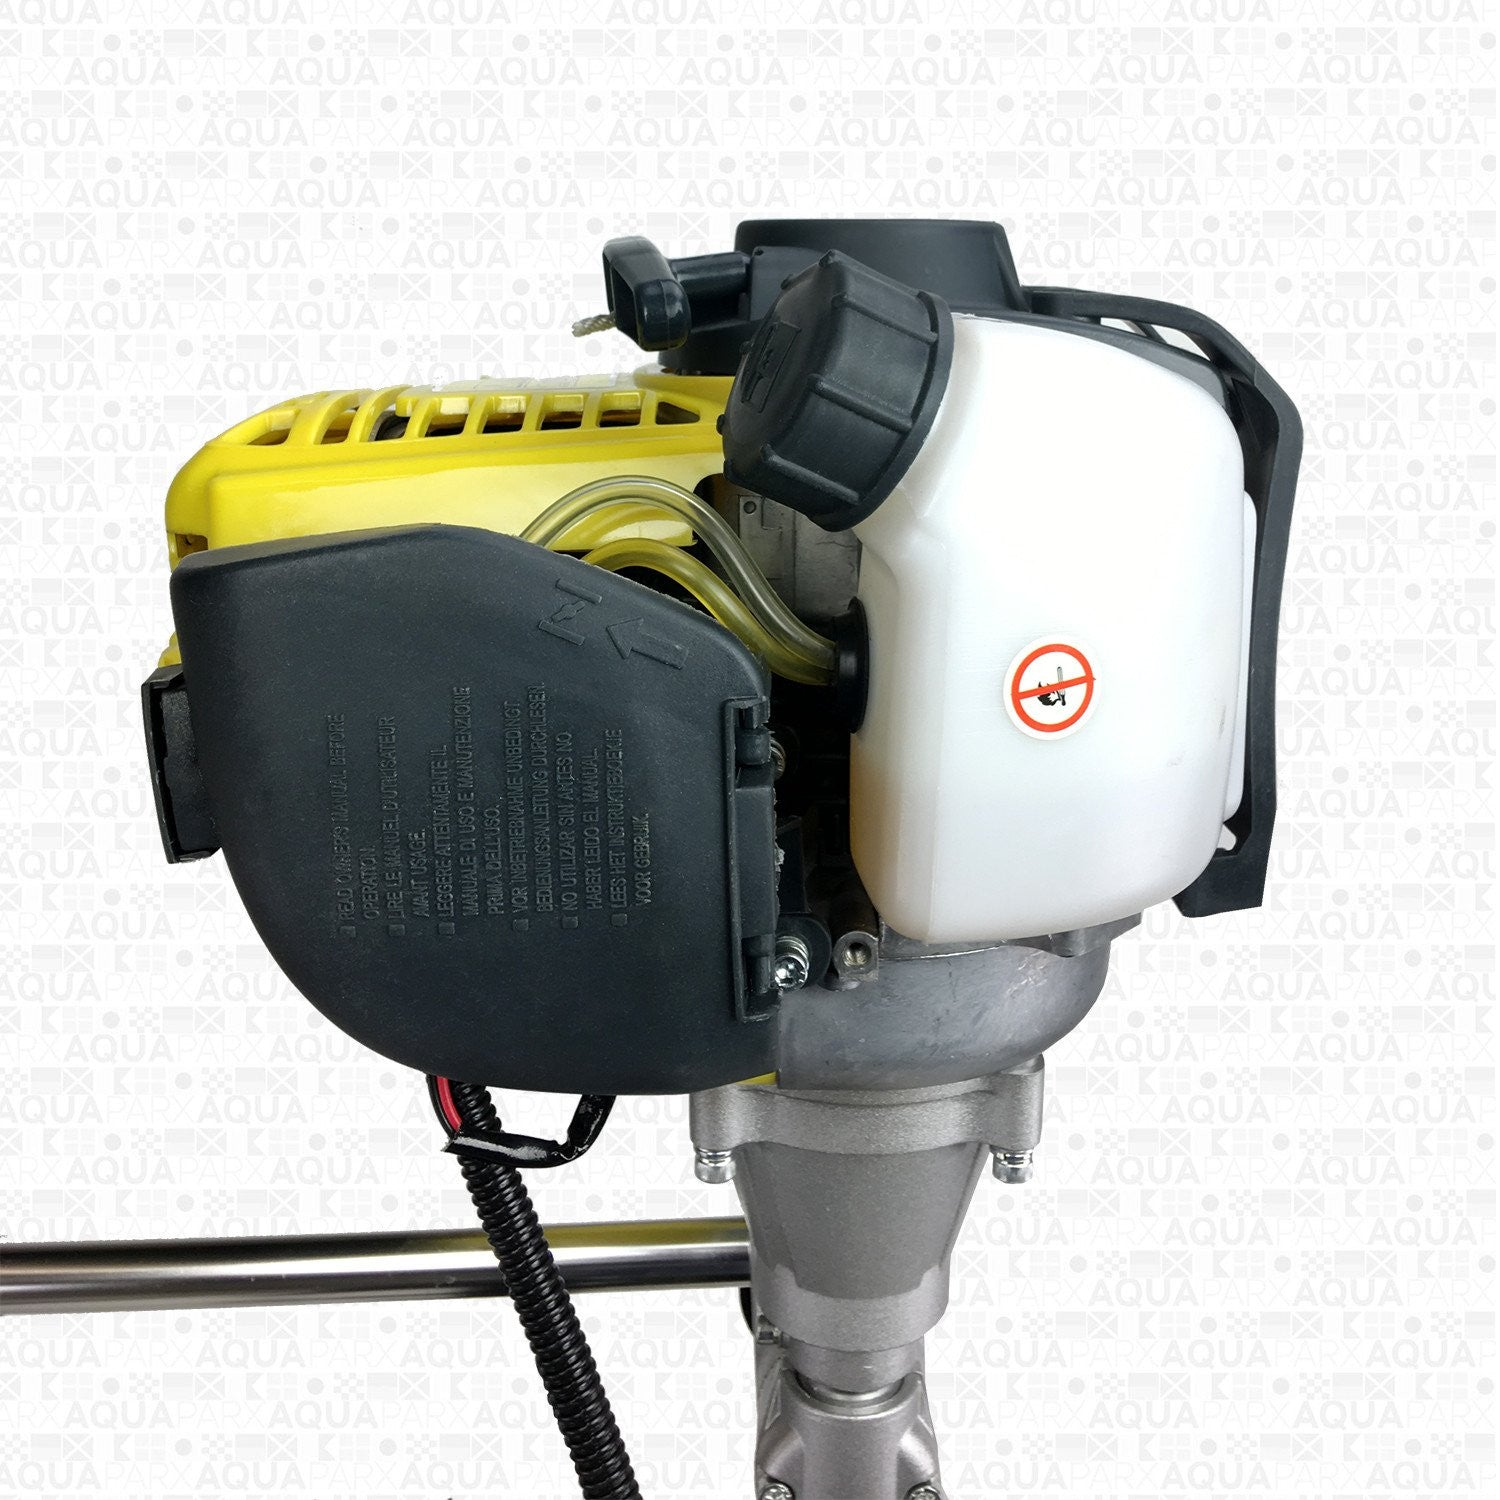 1.2 HP MKII Outboard Motor - Gasoline